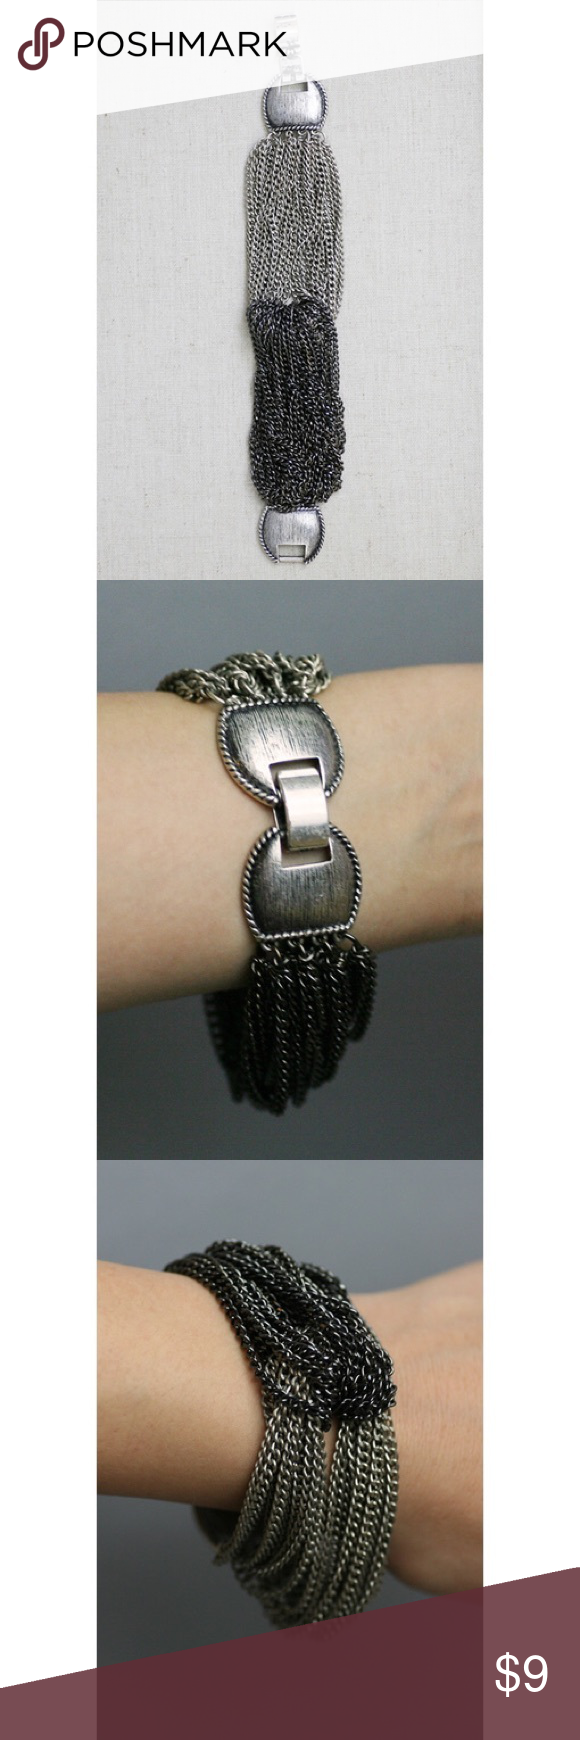 "All Chained Up Bracelet Ultra cool bracelet featuring two metal tones. Looped chain design with clasp fixture. 7"" circumference length 1.25"" depth Jewelry Bracelets"